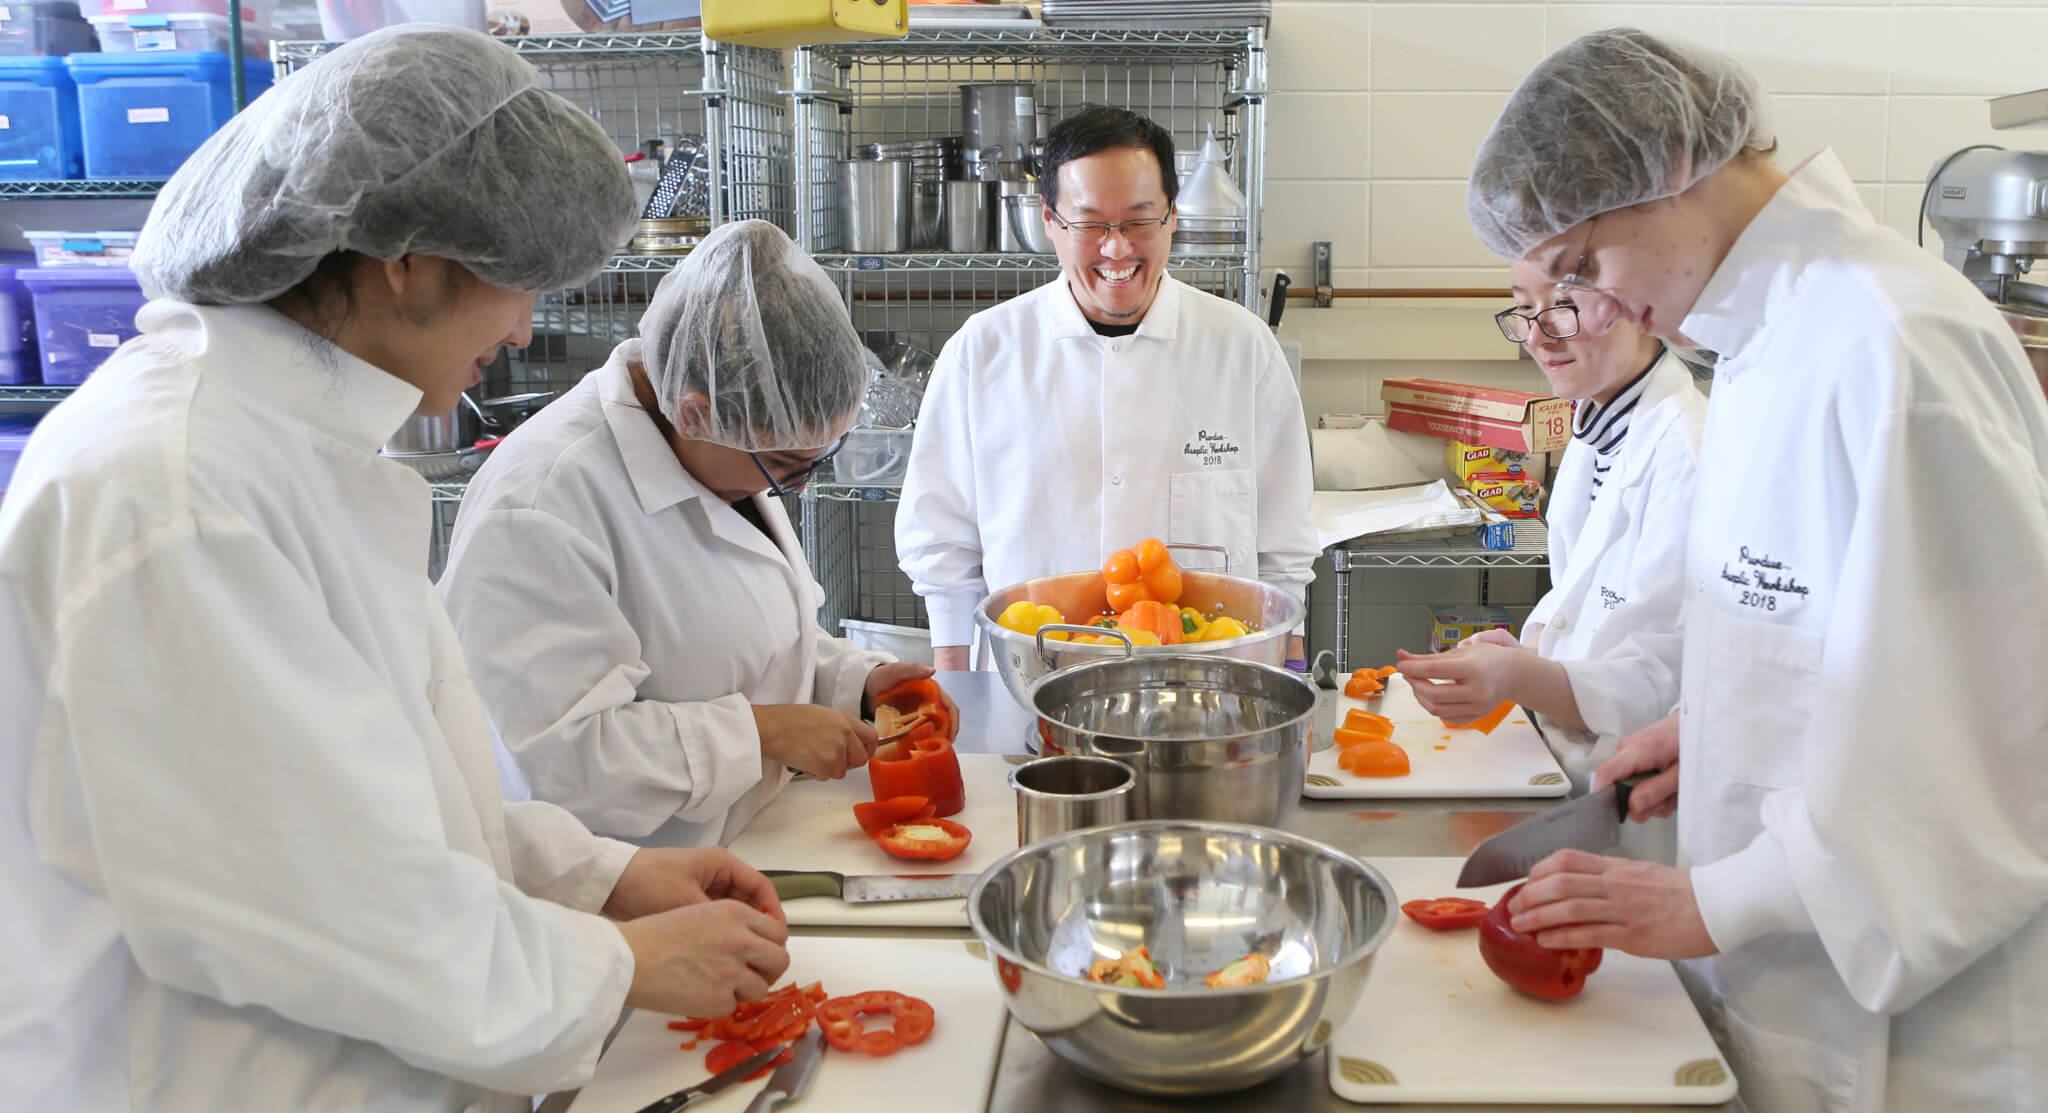 Joseph Yoon working with Food Science students during his visit to Purdue University. Photo credit: Tom Campbell.